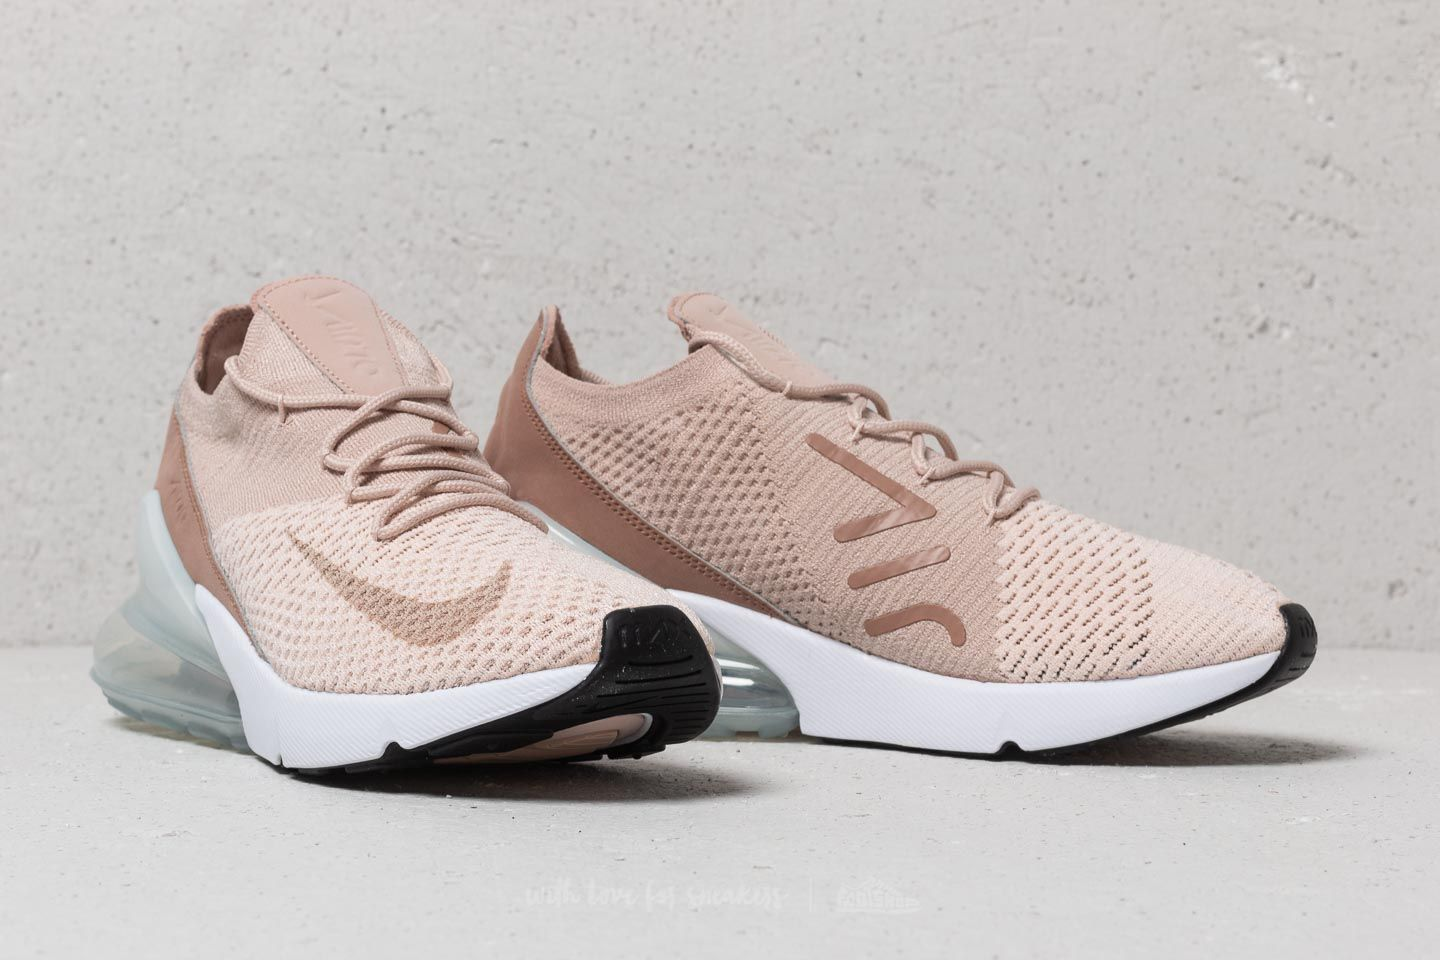 newest 2d366 c6a35 Nike Wmns Air Max 270 Flyknit Guava Ice/ Particle Beige ...